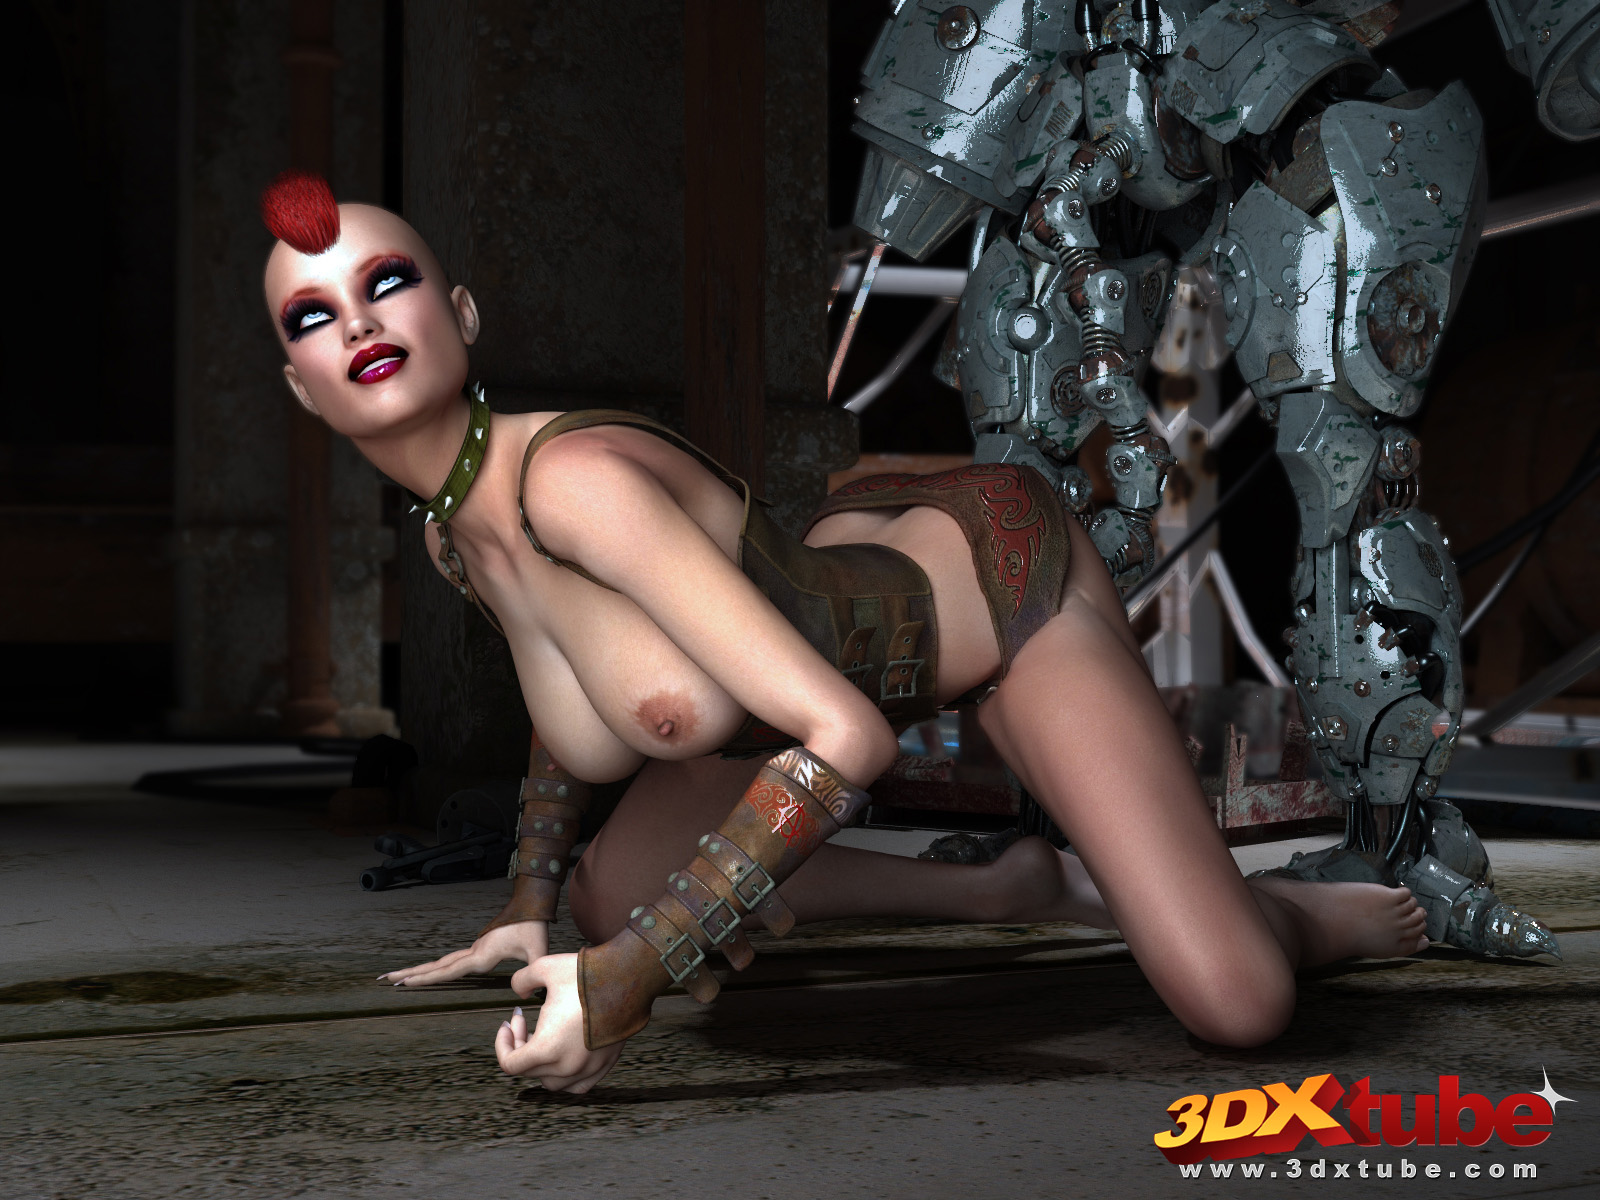 3d naked chick fucked by a robot nude scenes